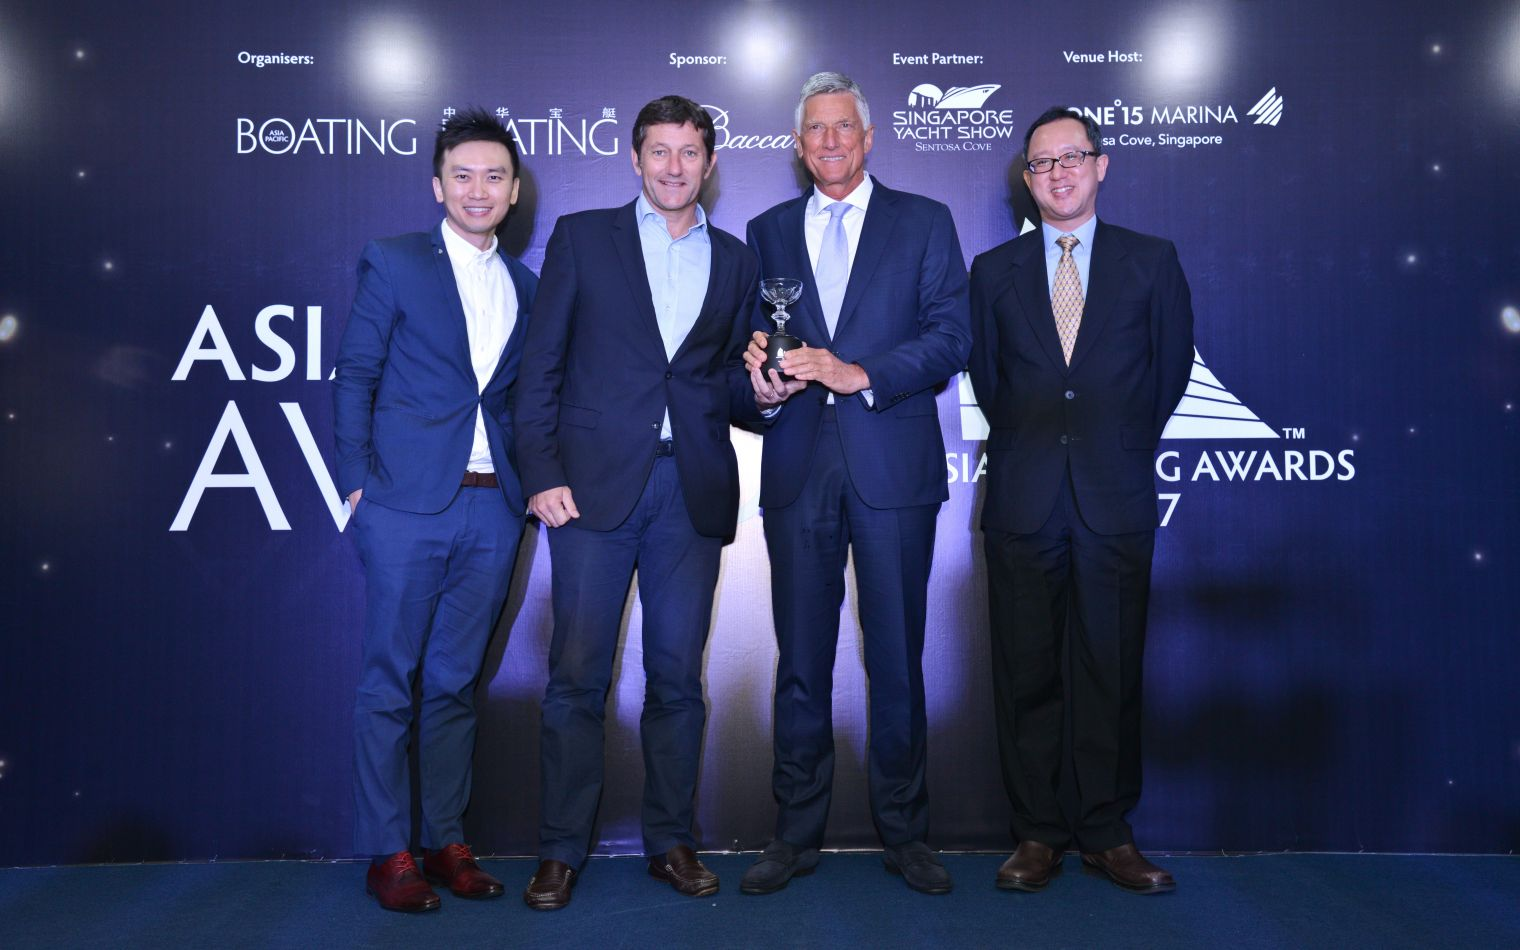 The SEVENTY 7 wins an award in Asia